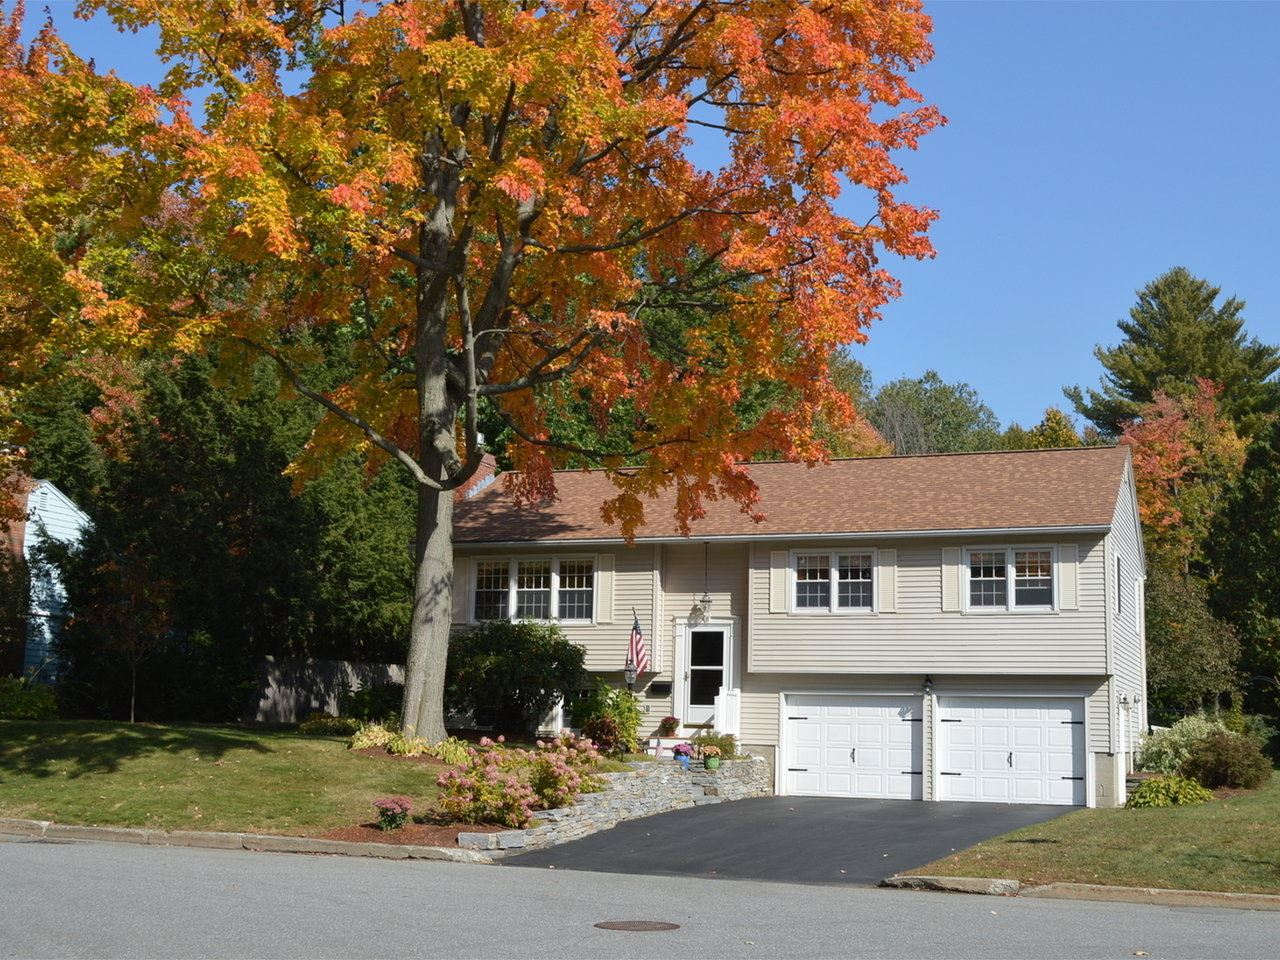 7 Yandow Drive, South Burlington